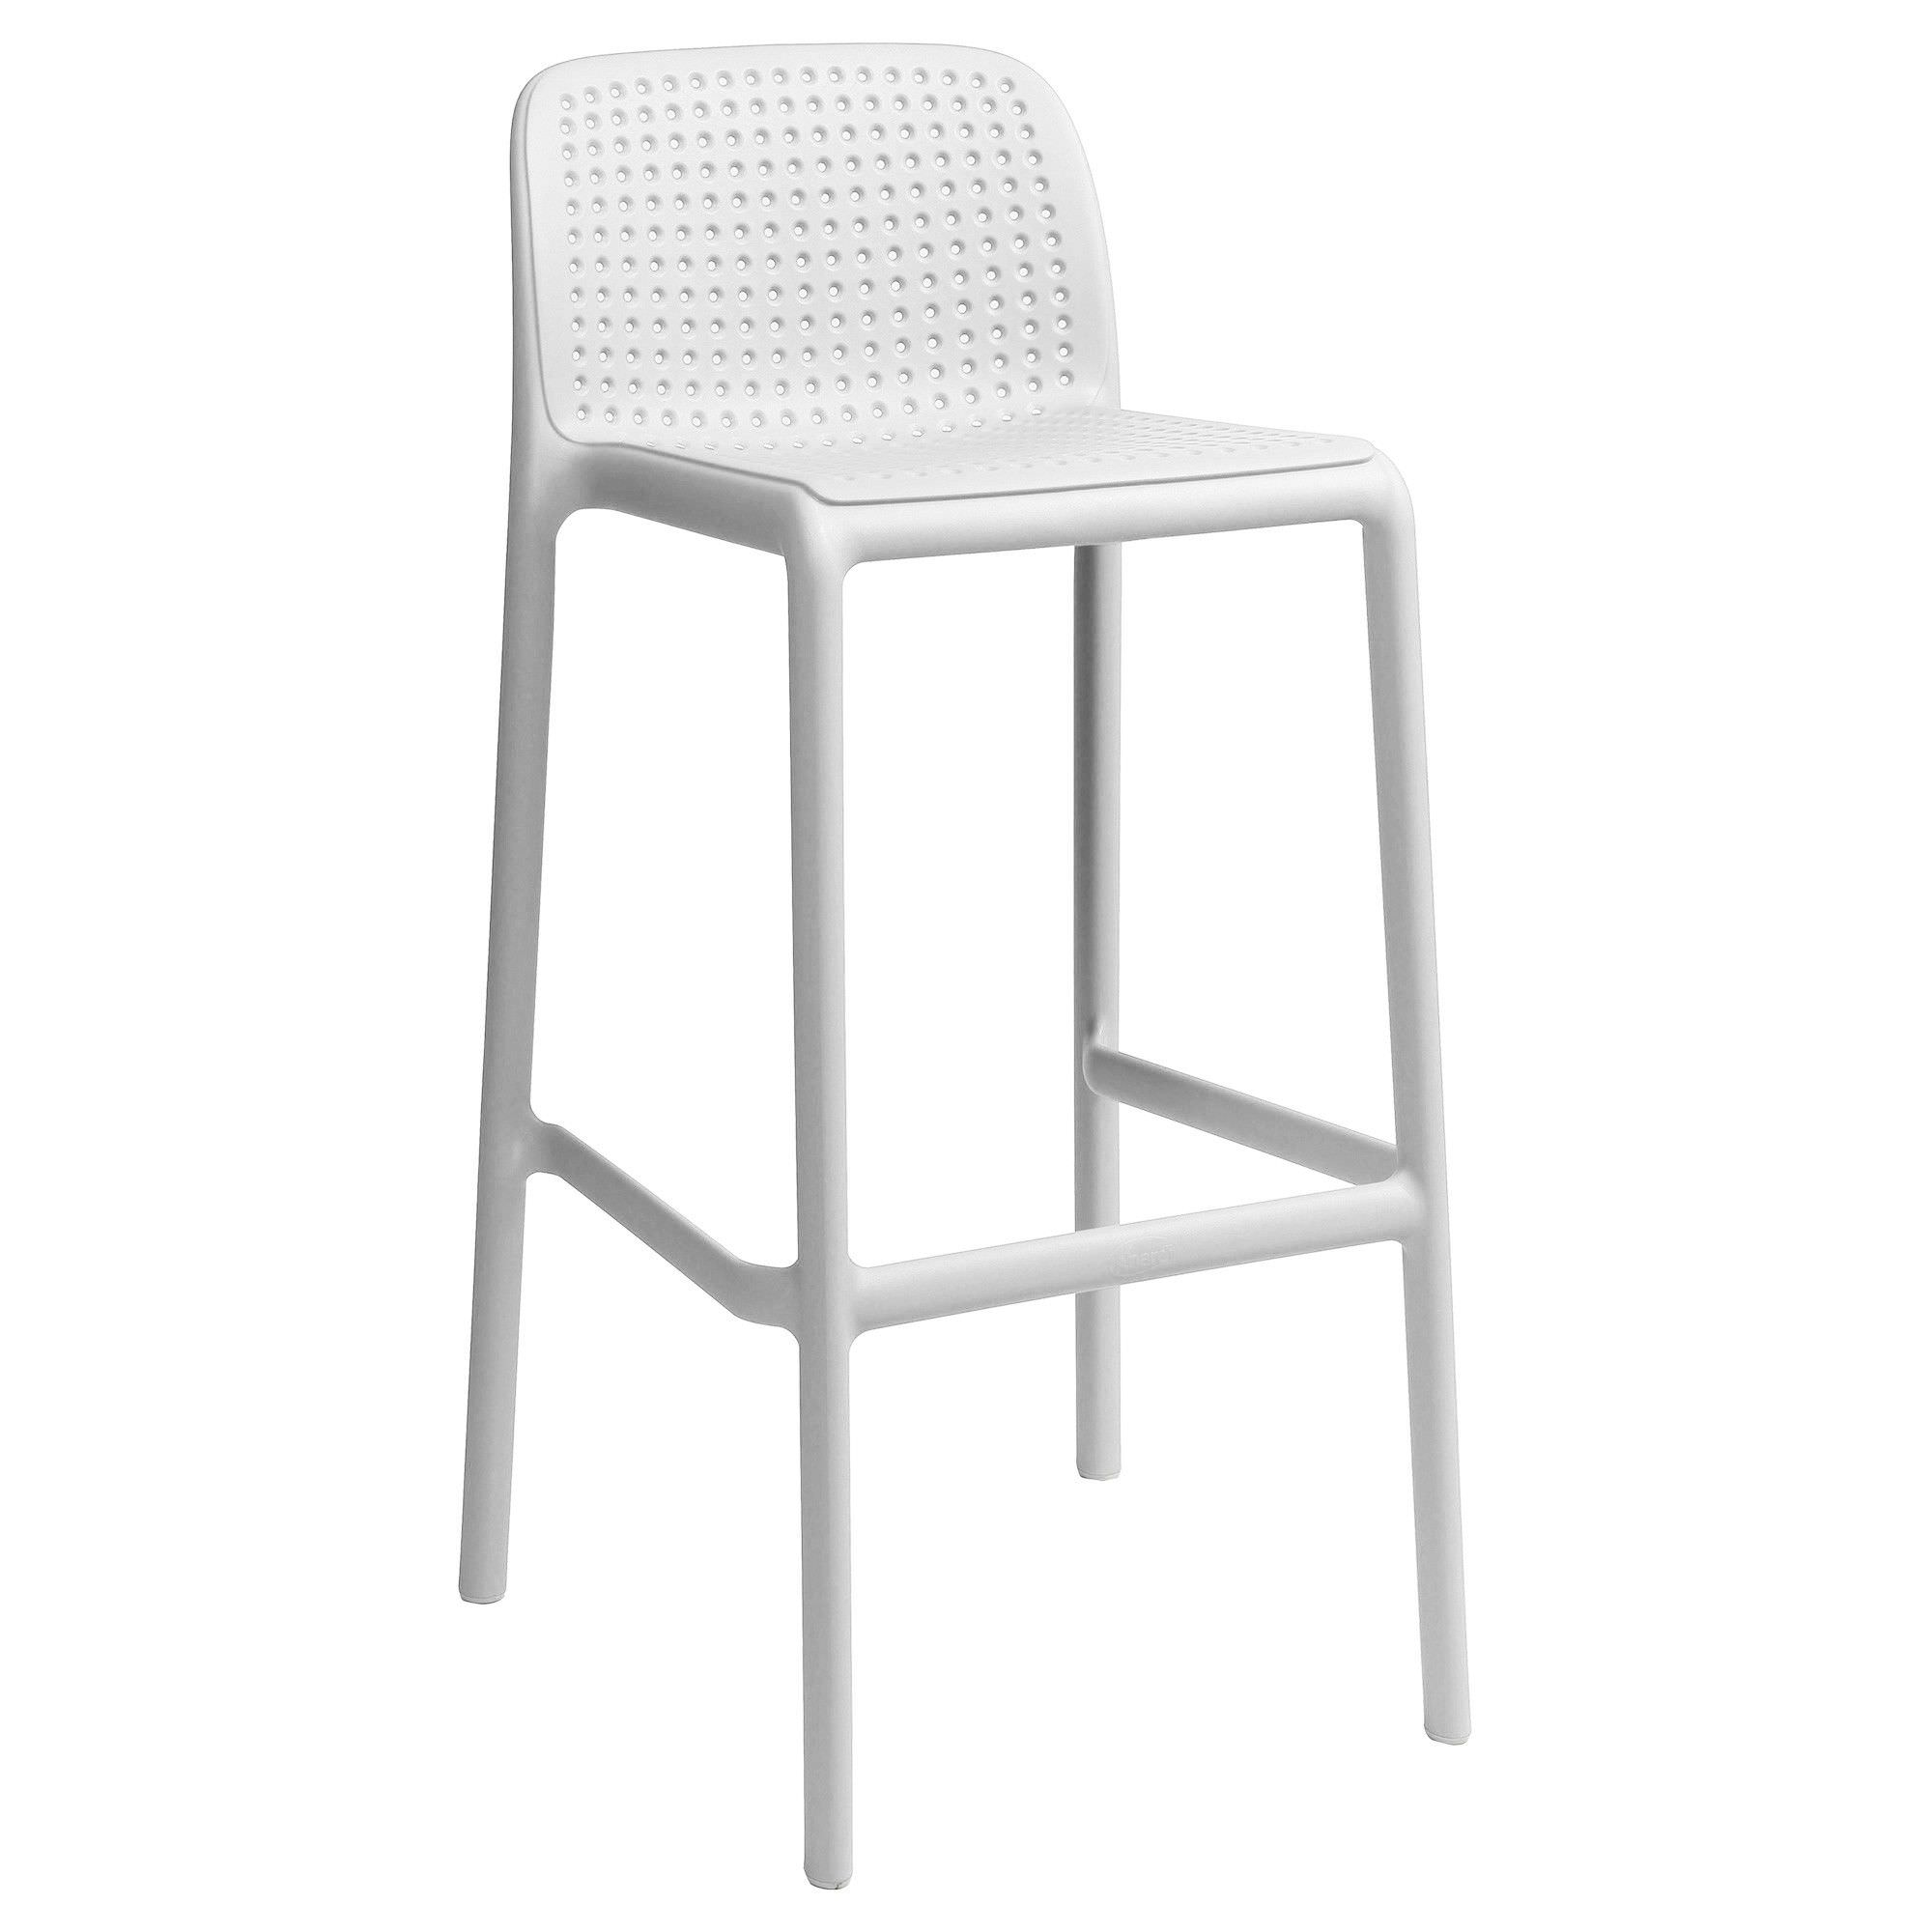 Bora Italian Made Commercial Grade Stackable Indoor/Outdoor Bar Stool , White